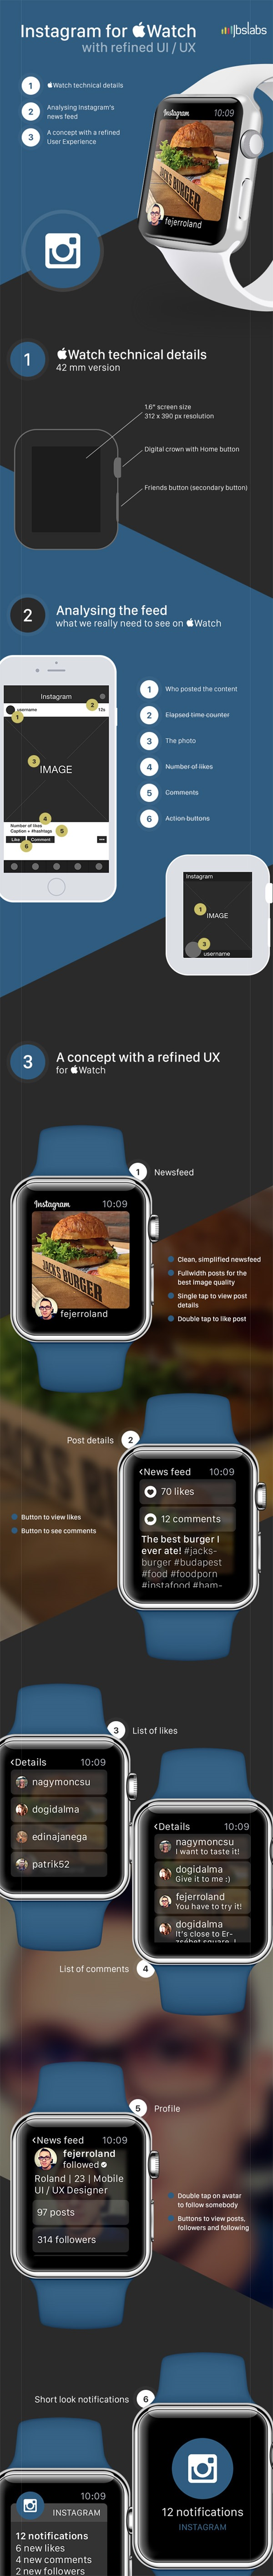 Apple Watch concept Instagram